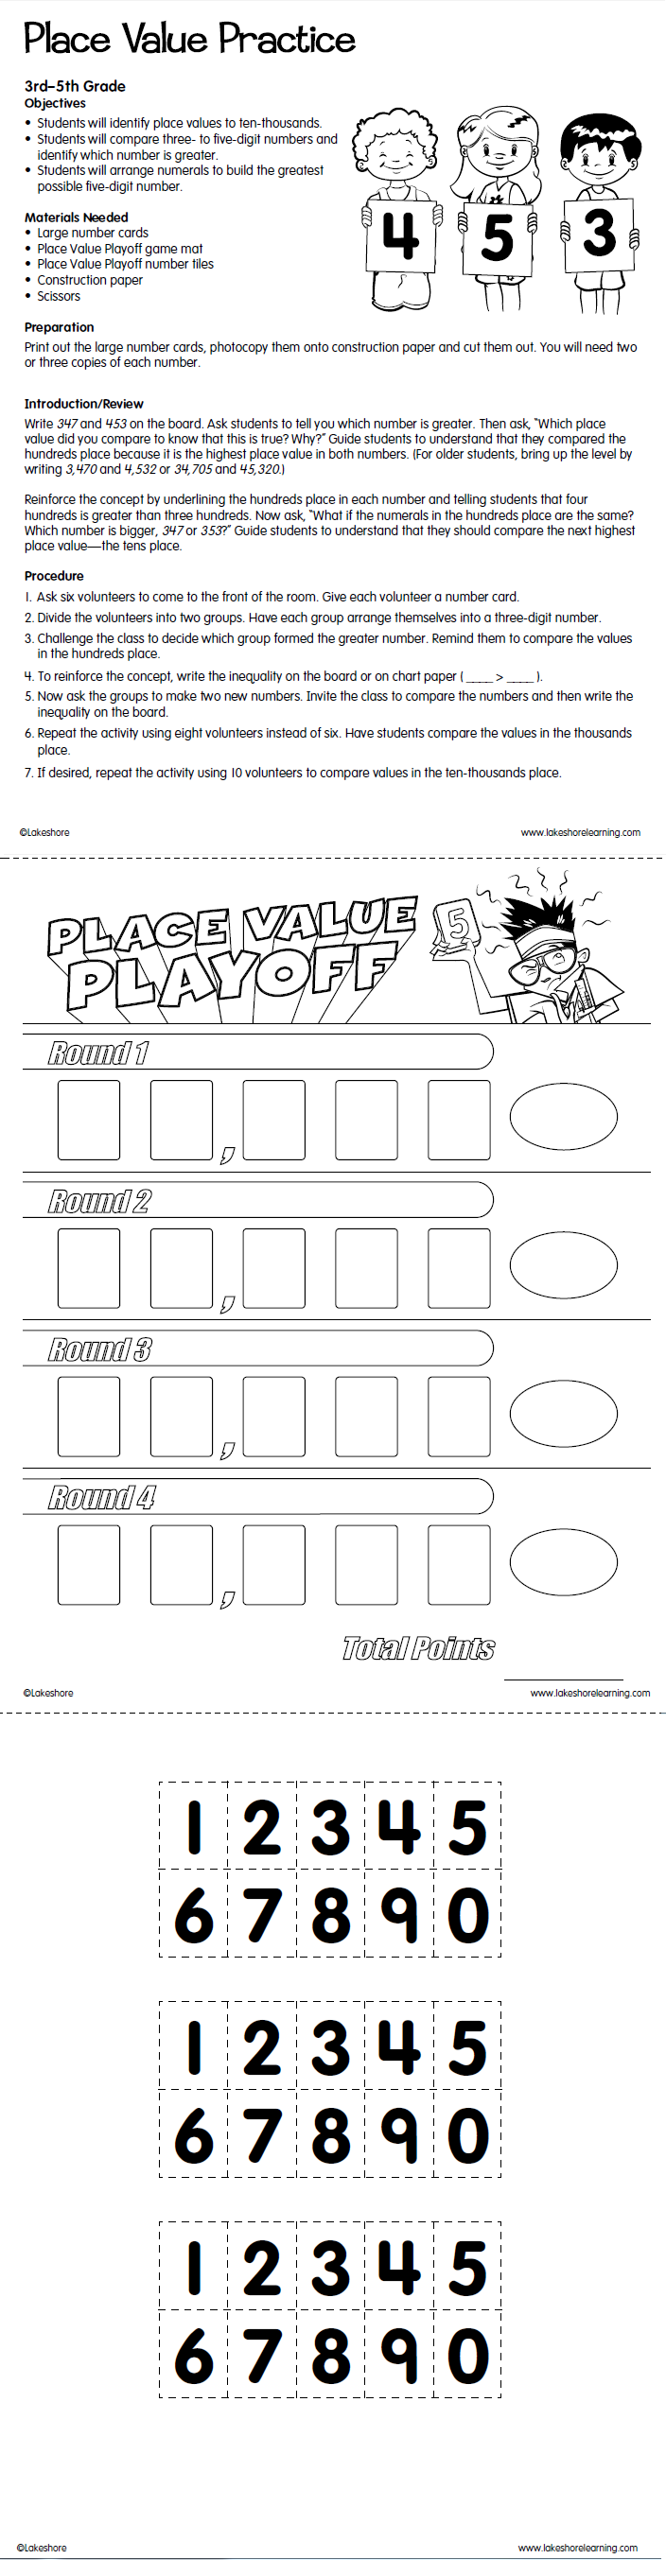 worksheet Rounding Practice get ready for 4th grade with lakeshores free place value practice printable areyouready